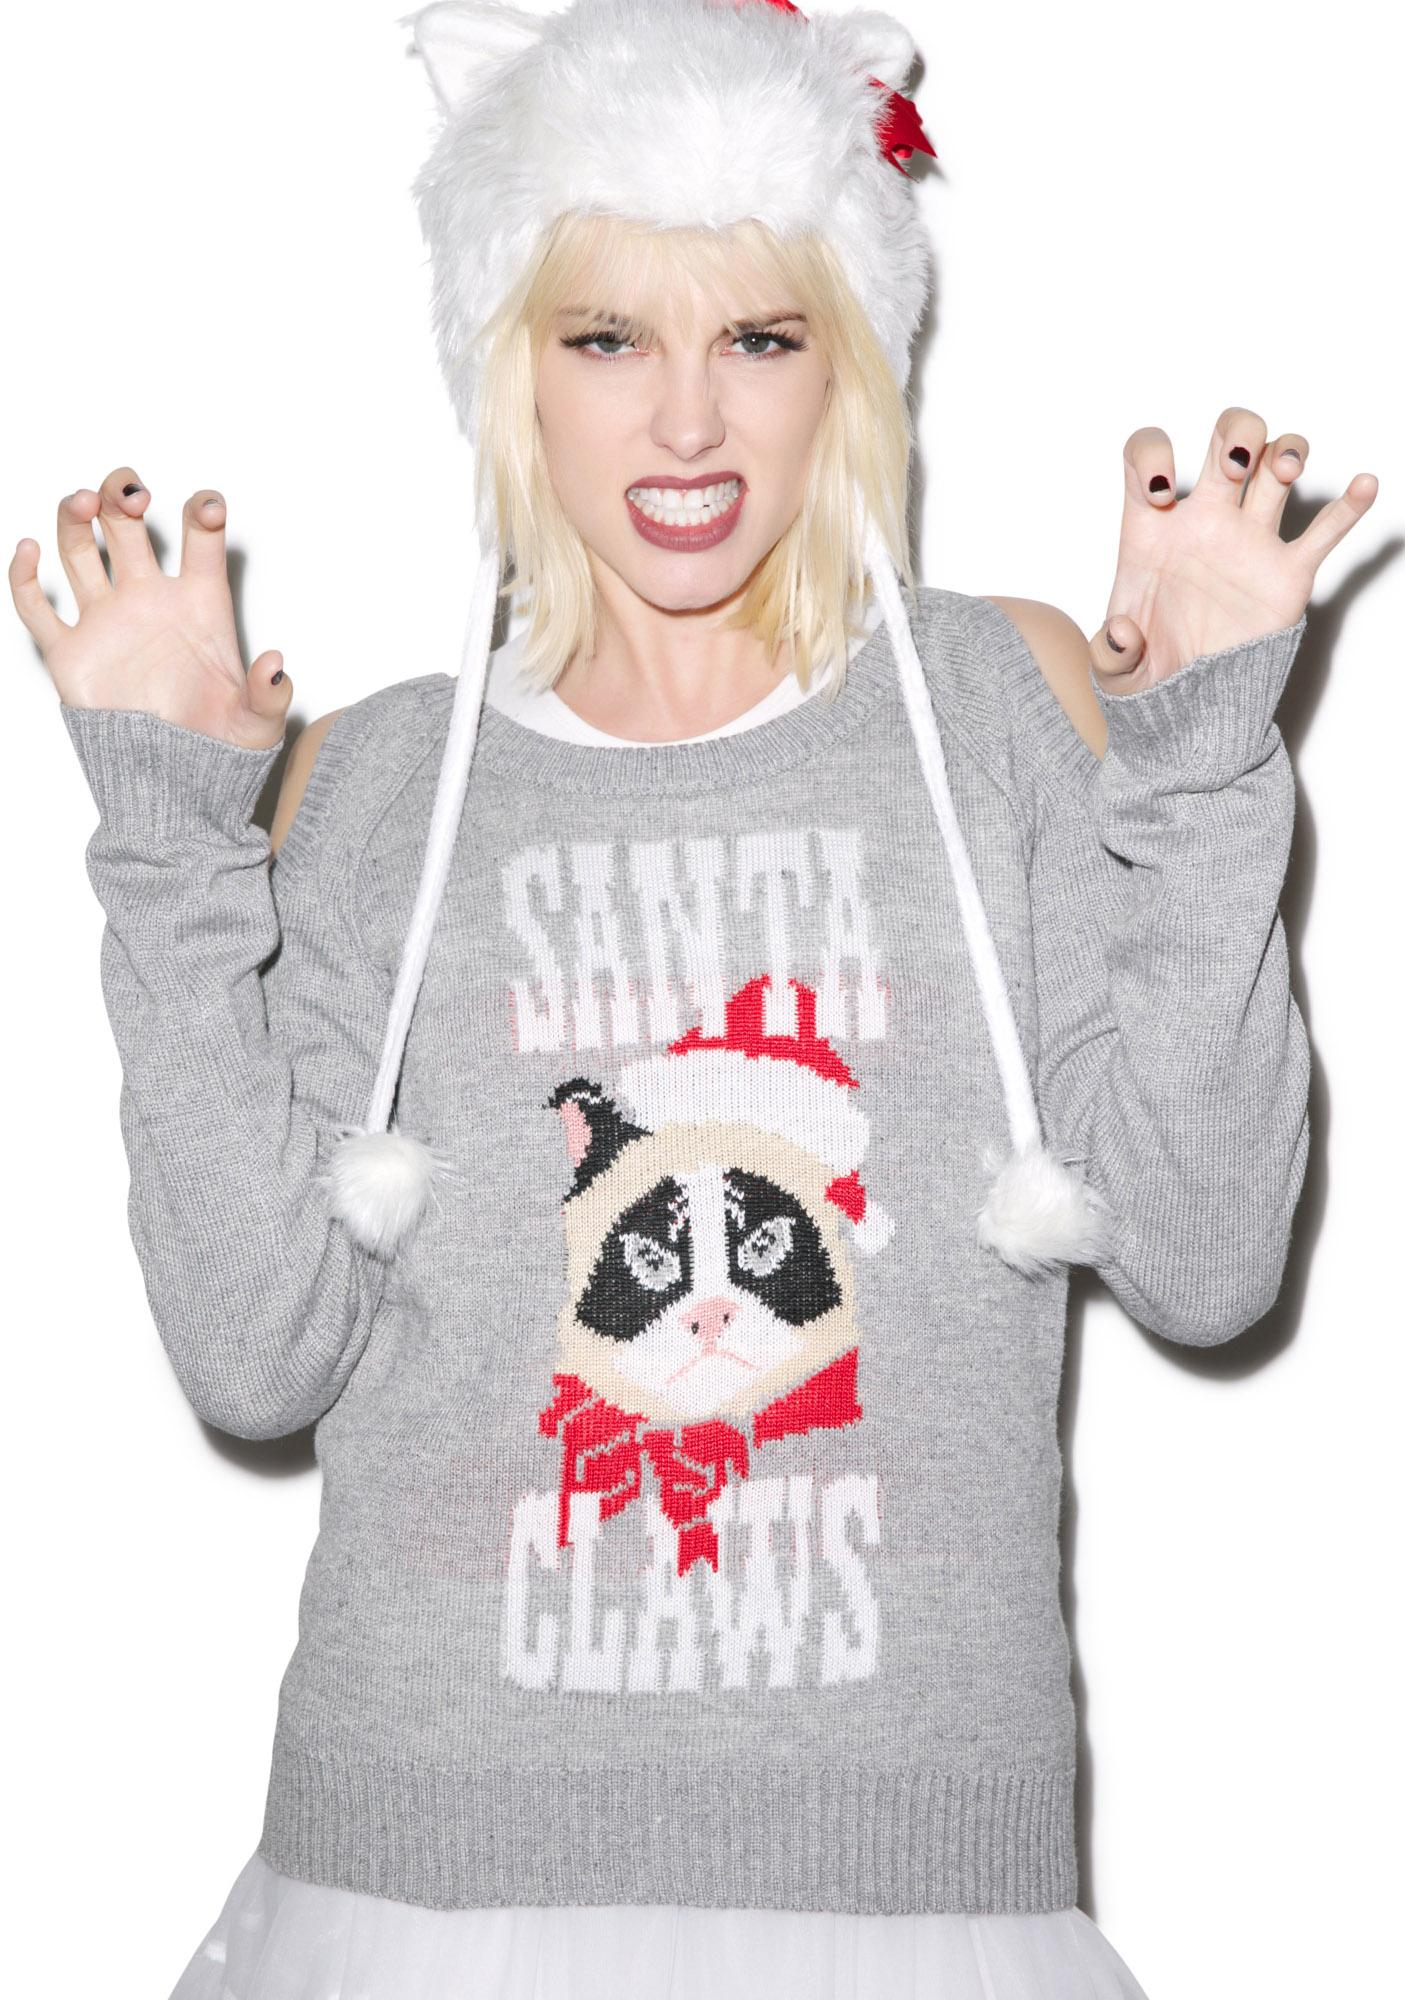 Tipsy Elves Santa Claws Sweater